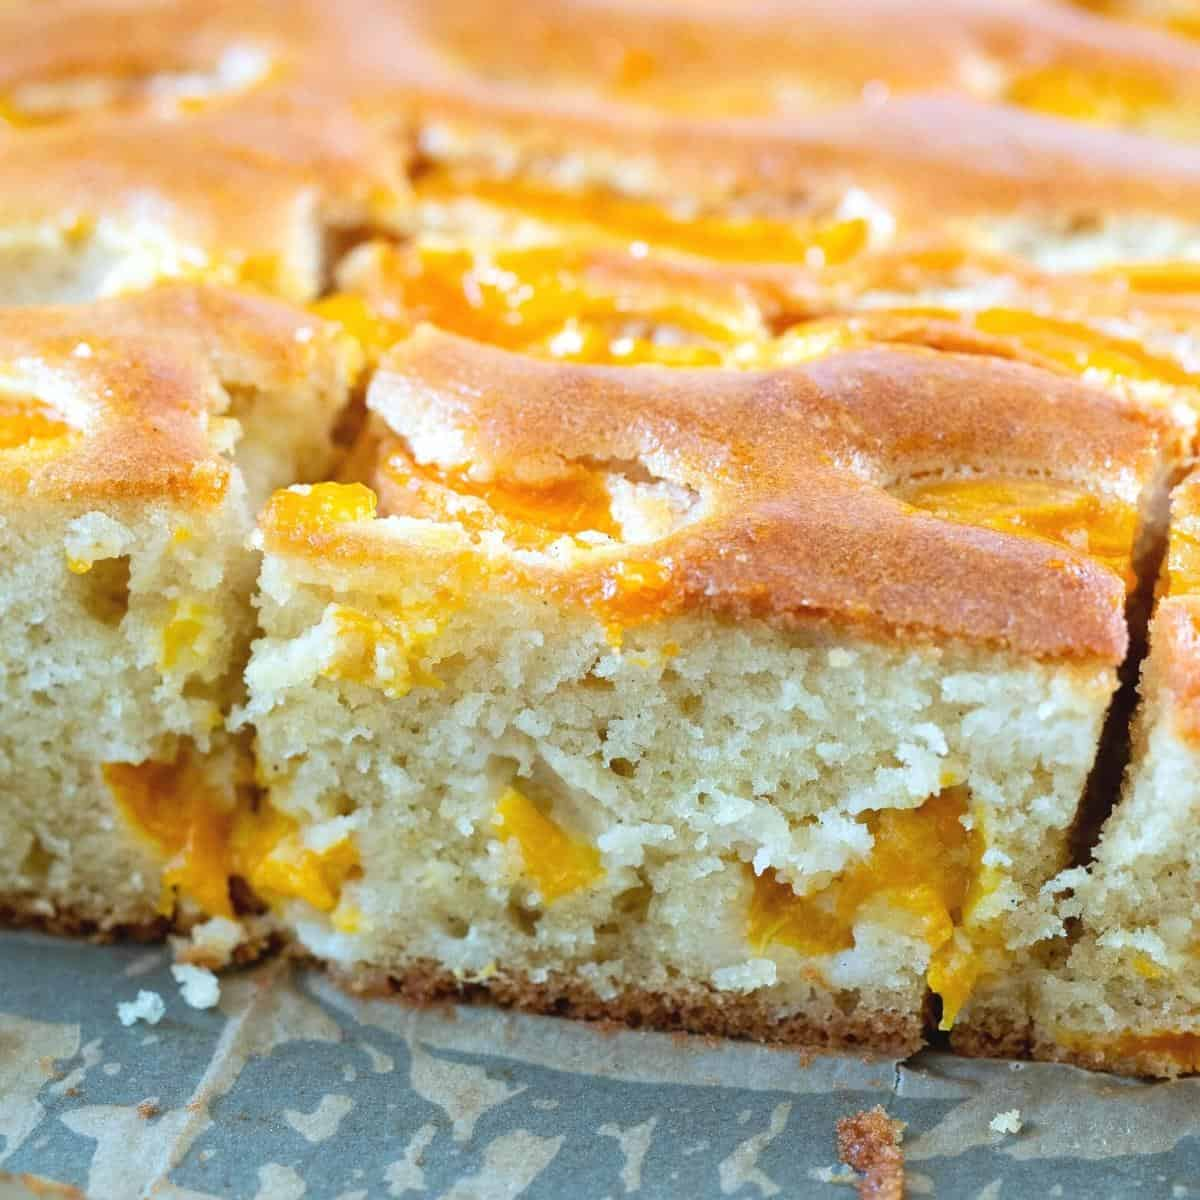 A sliced coffee cake topped with fresh apricots.